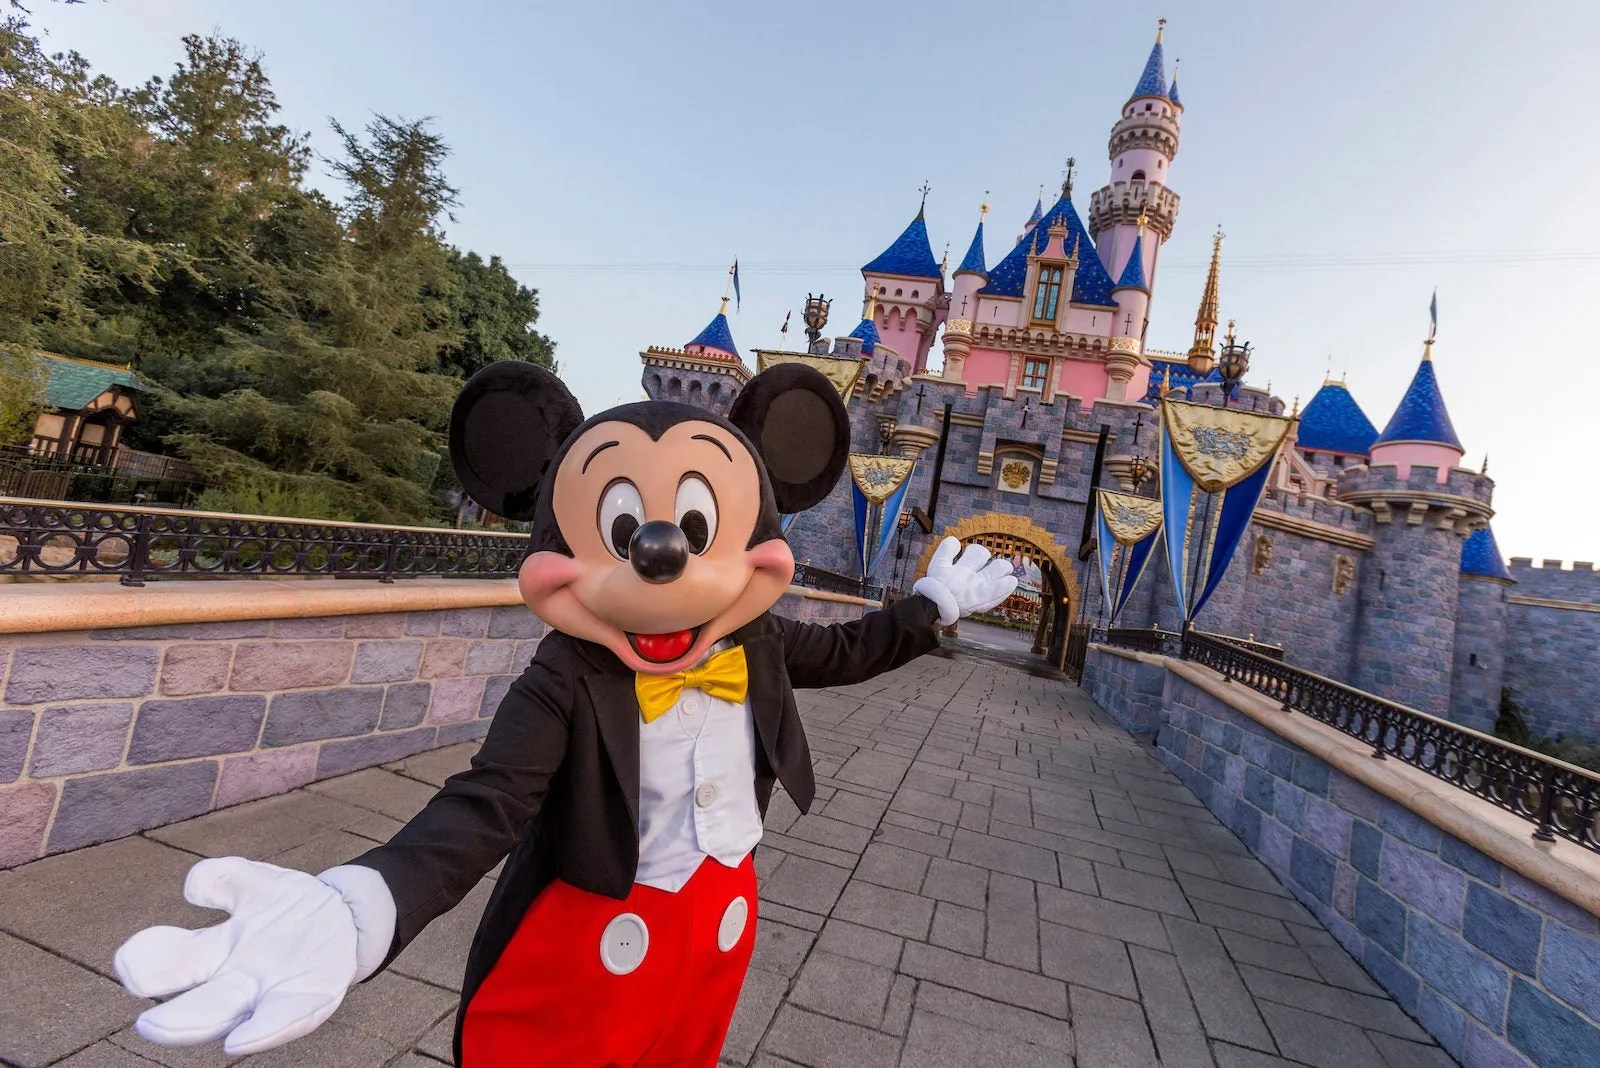 As California theme parks reopen, Disneyland announces reservation system